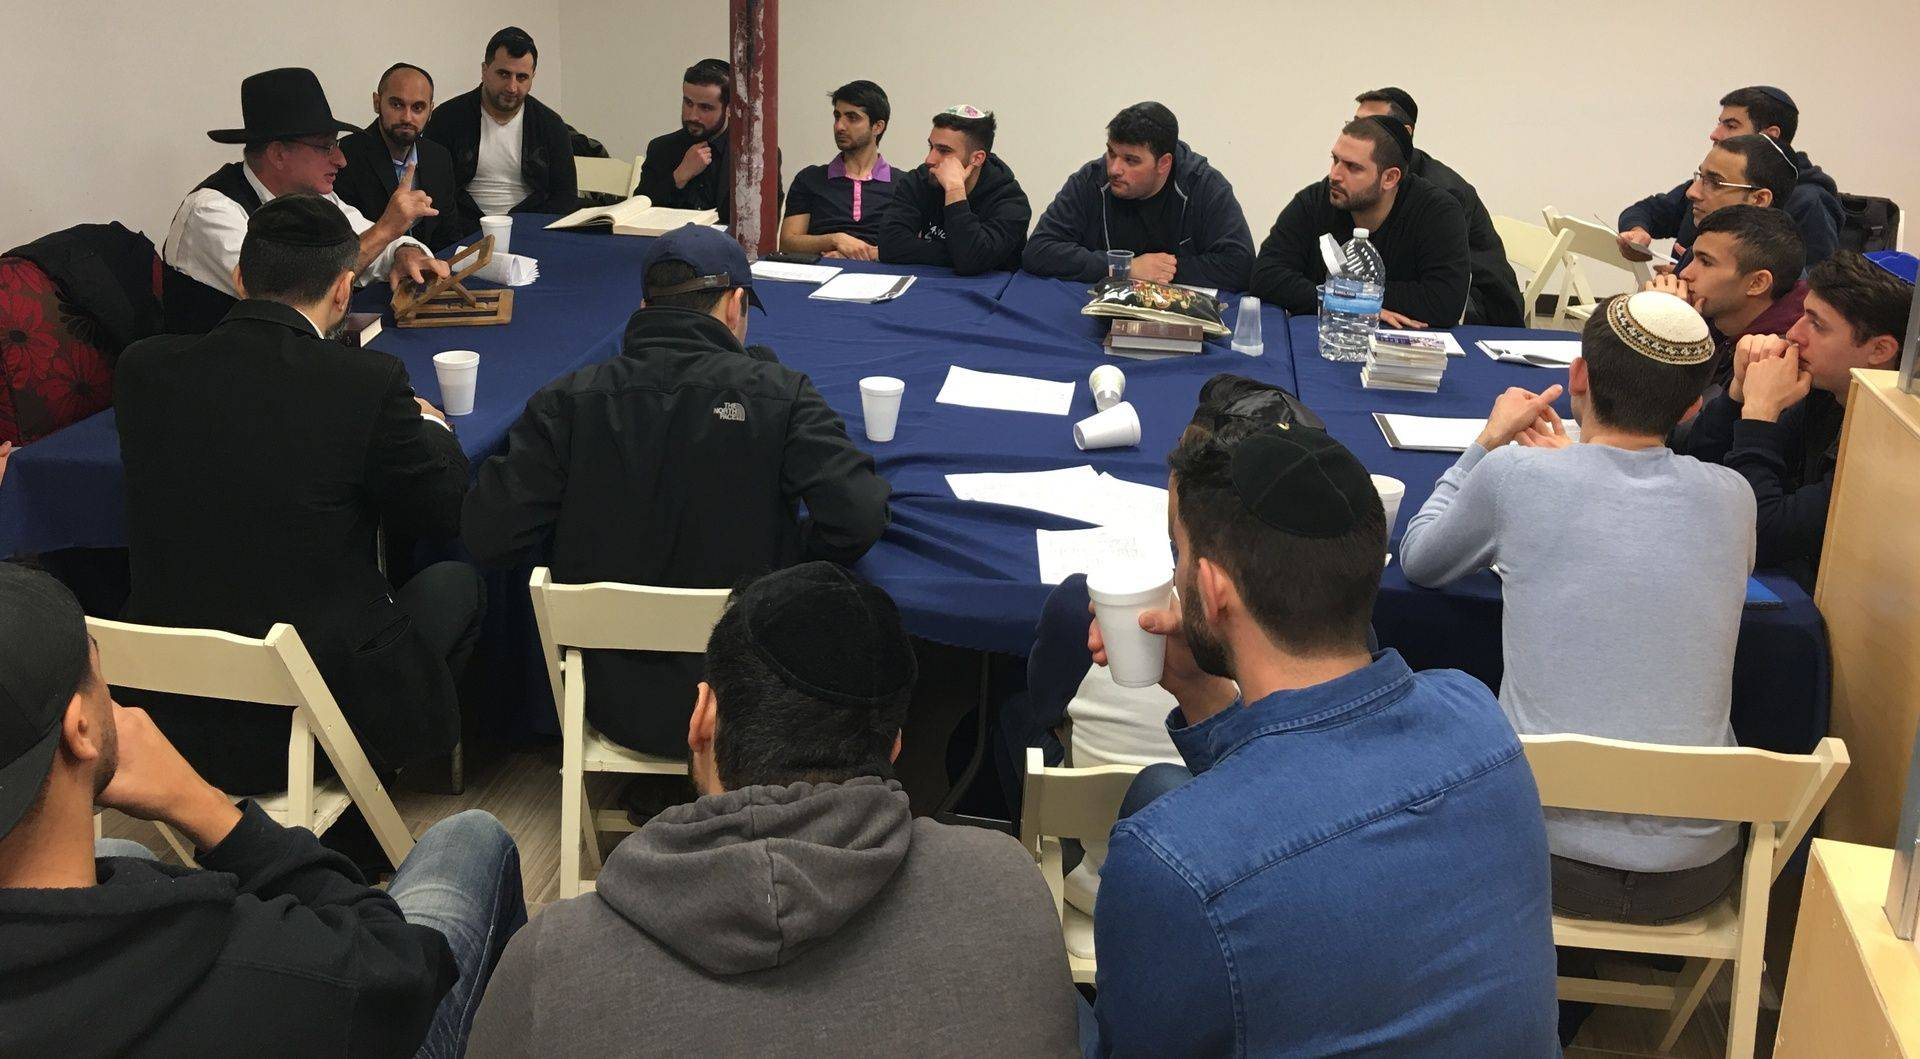 Learning at Yeshivas HaTurim